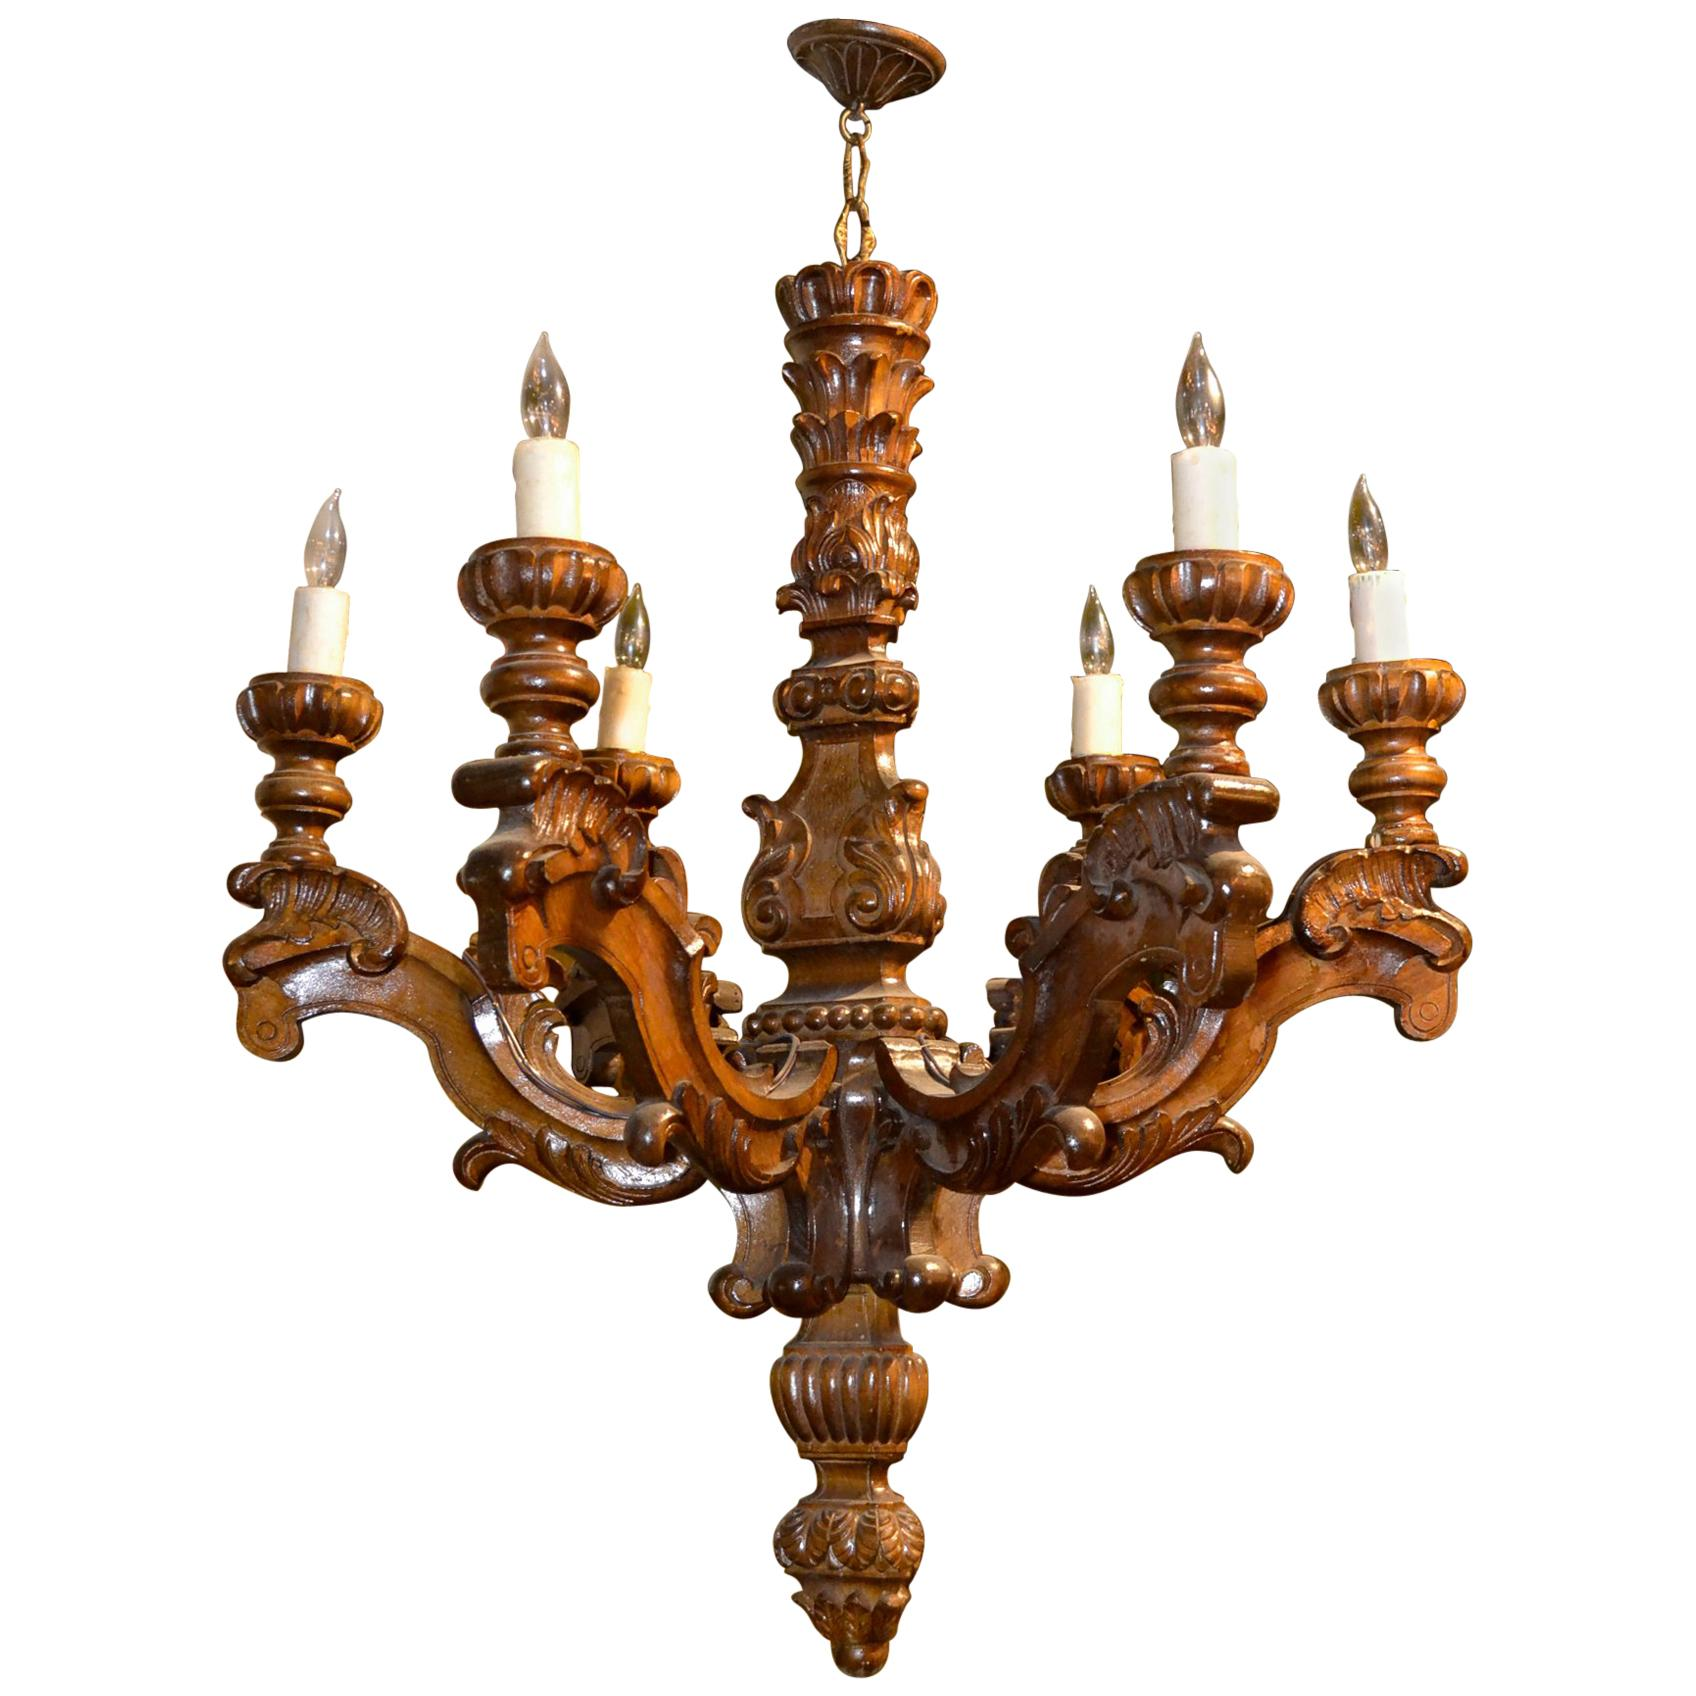 19th Century Italian Baroque Chandelier